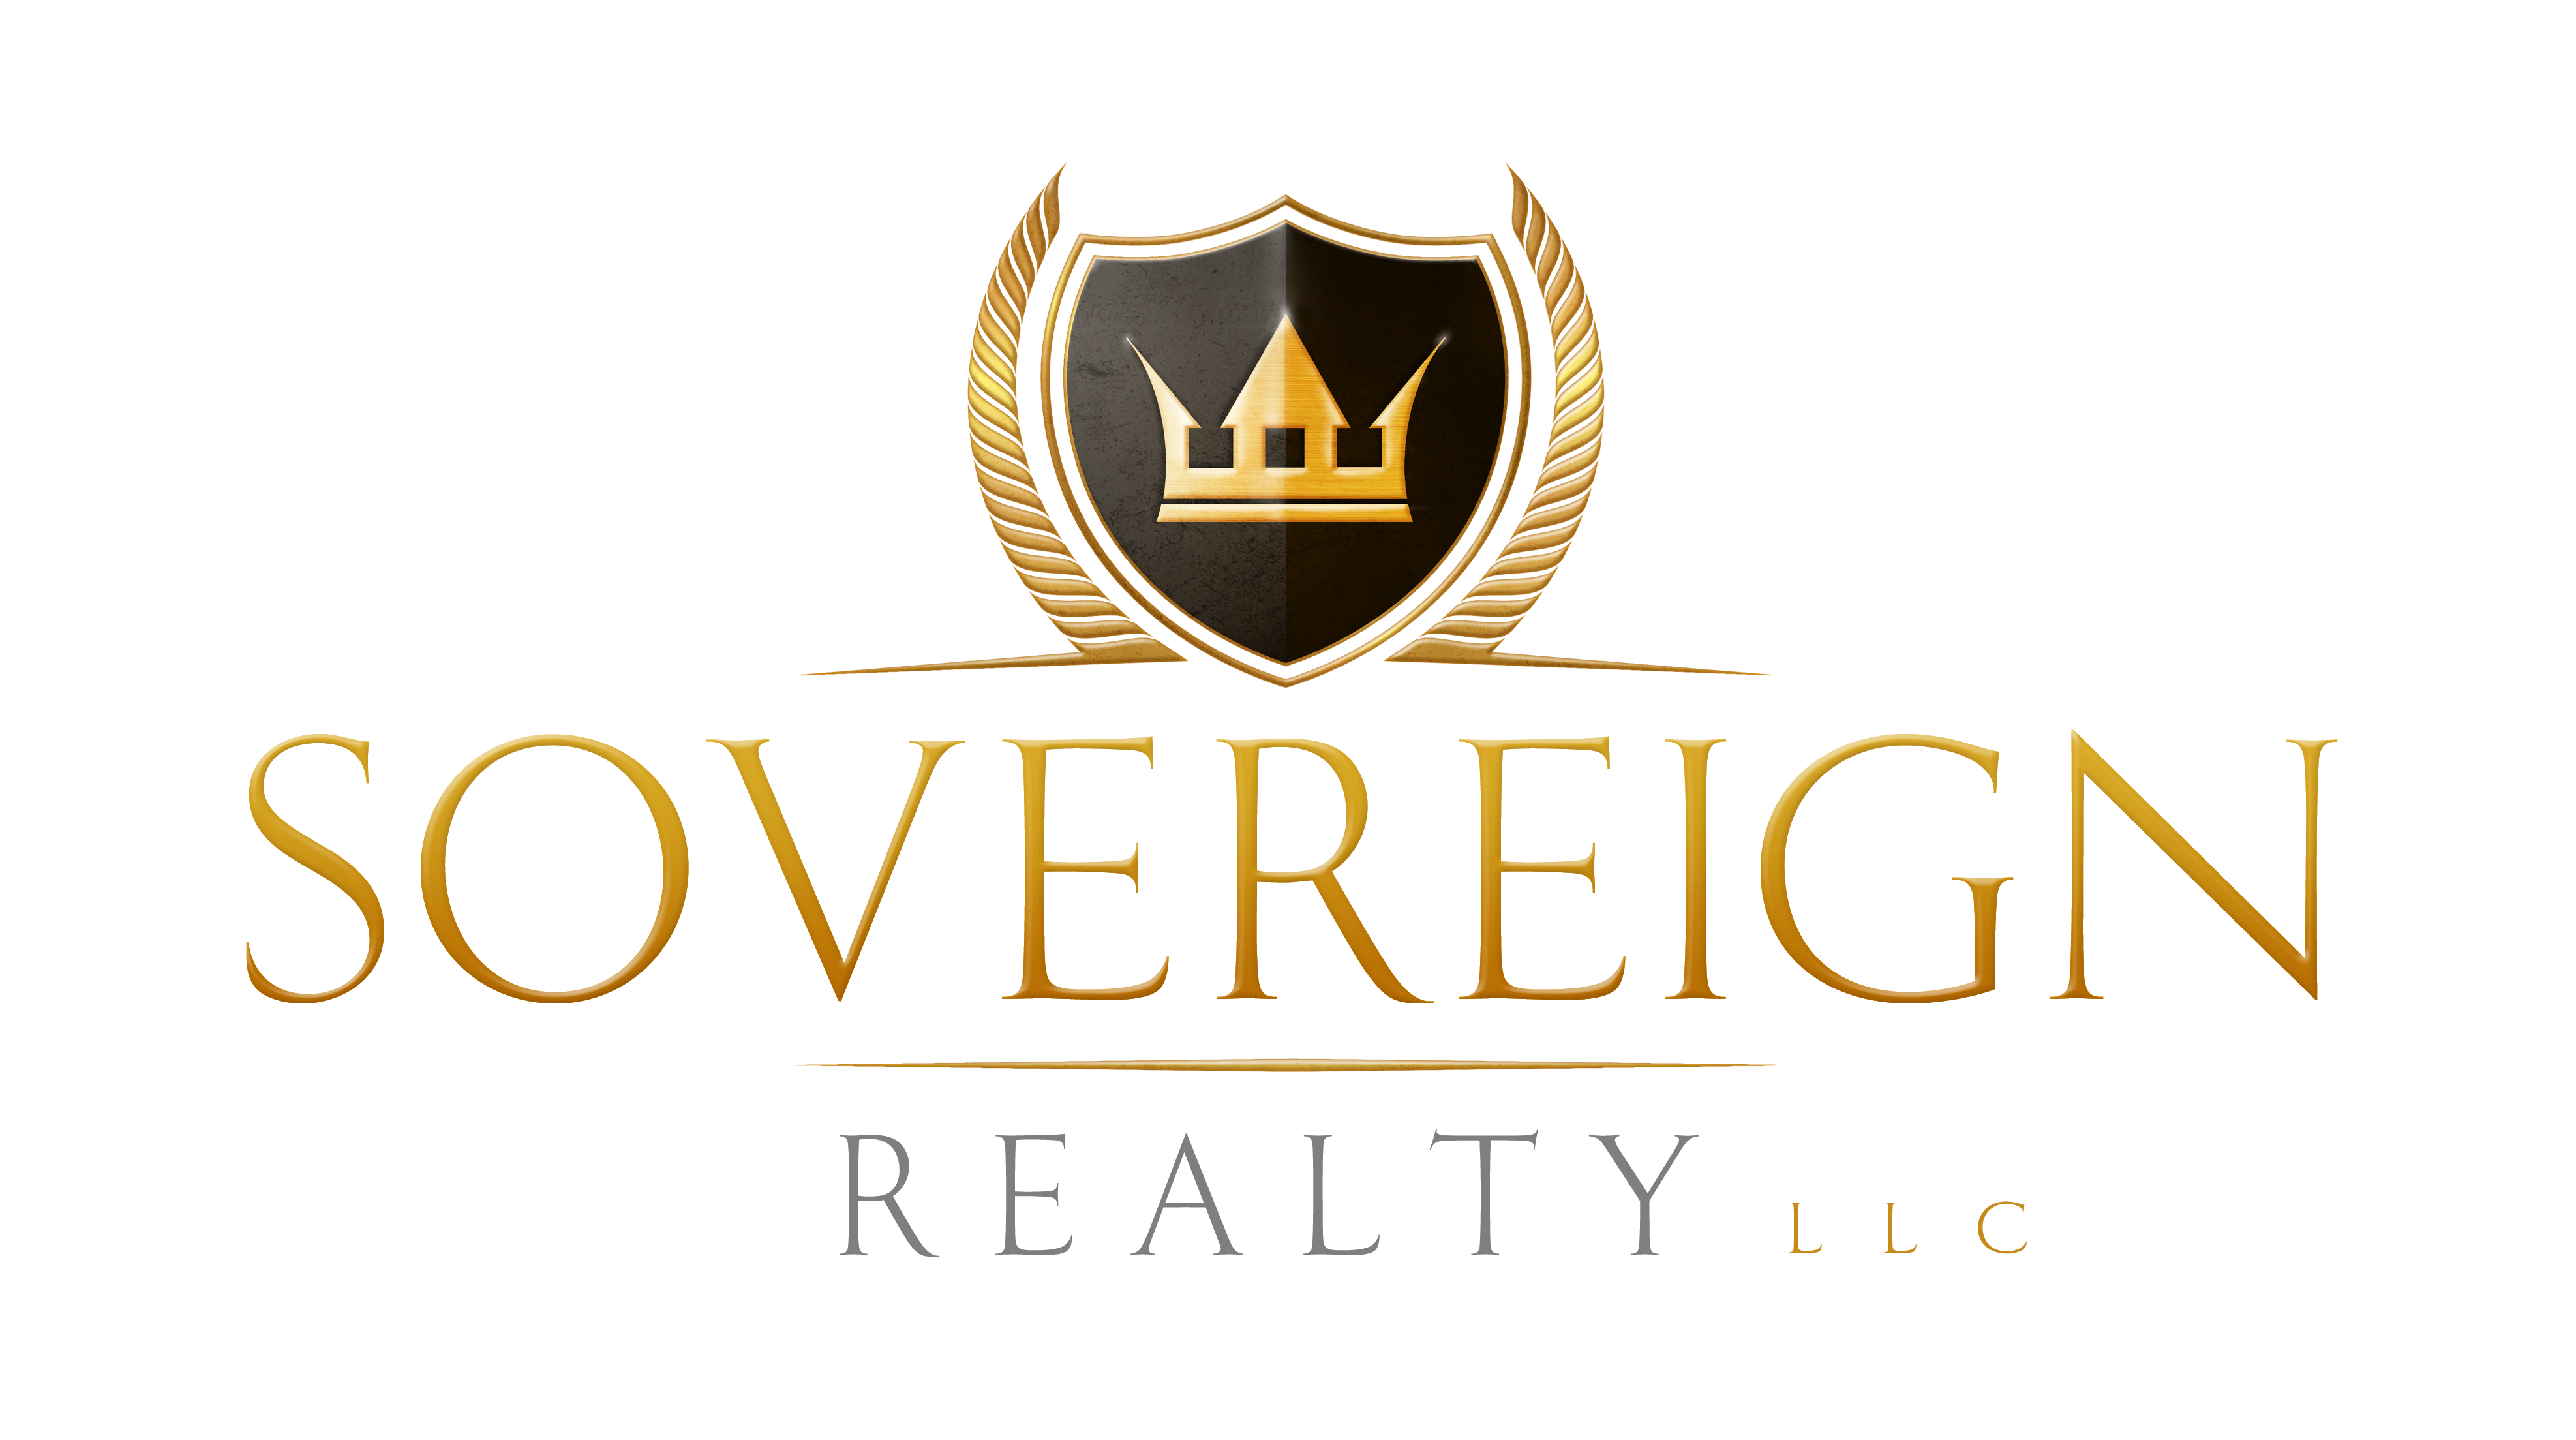 Sovereign Realty